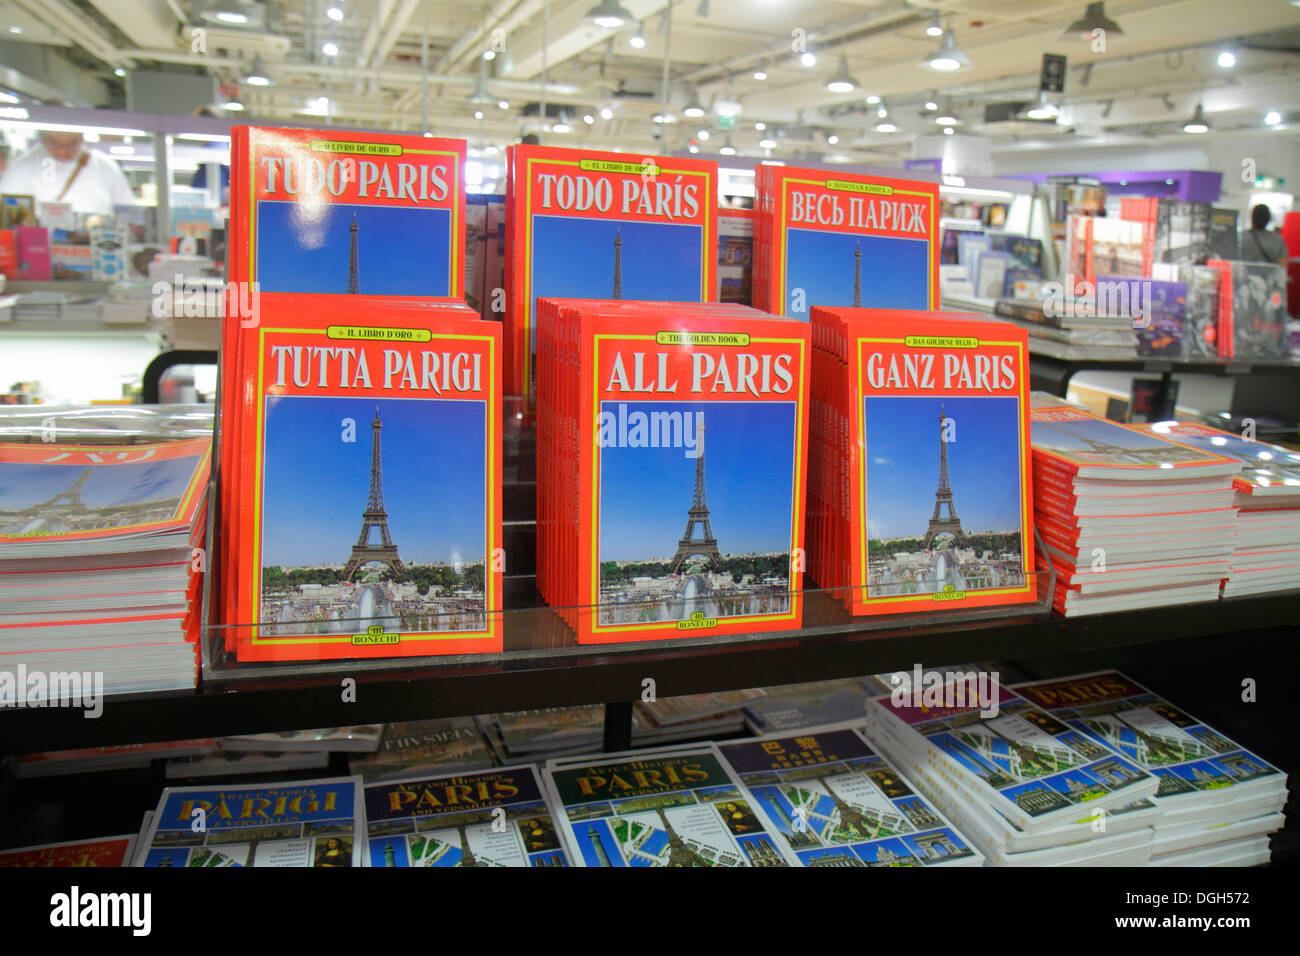 Paris France Europe French 9th arrondissement Boulevard Haussmann Galeries Lafayette department store shopping guide books guide - Stock Image